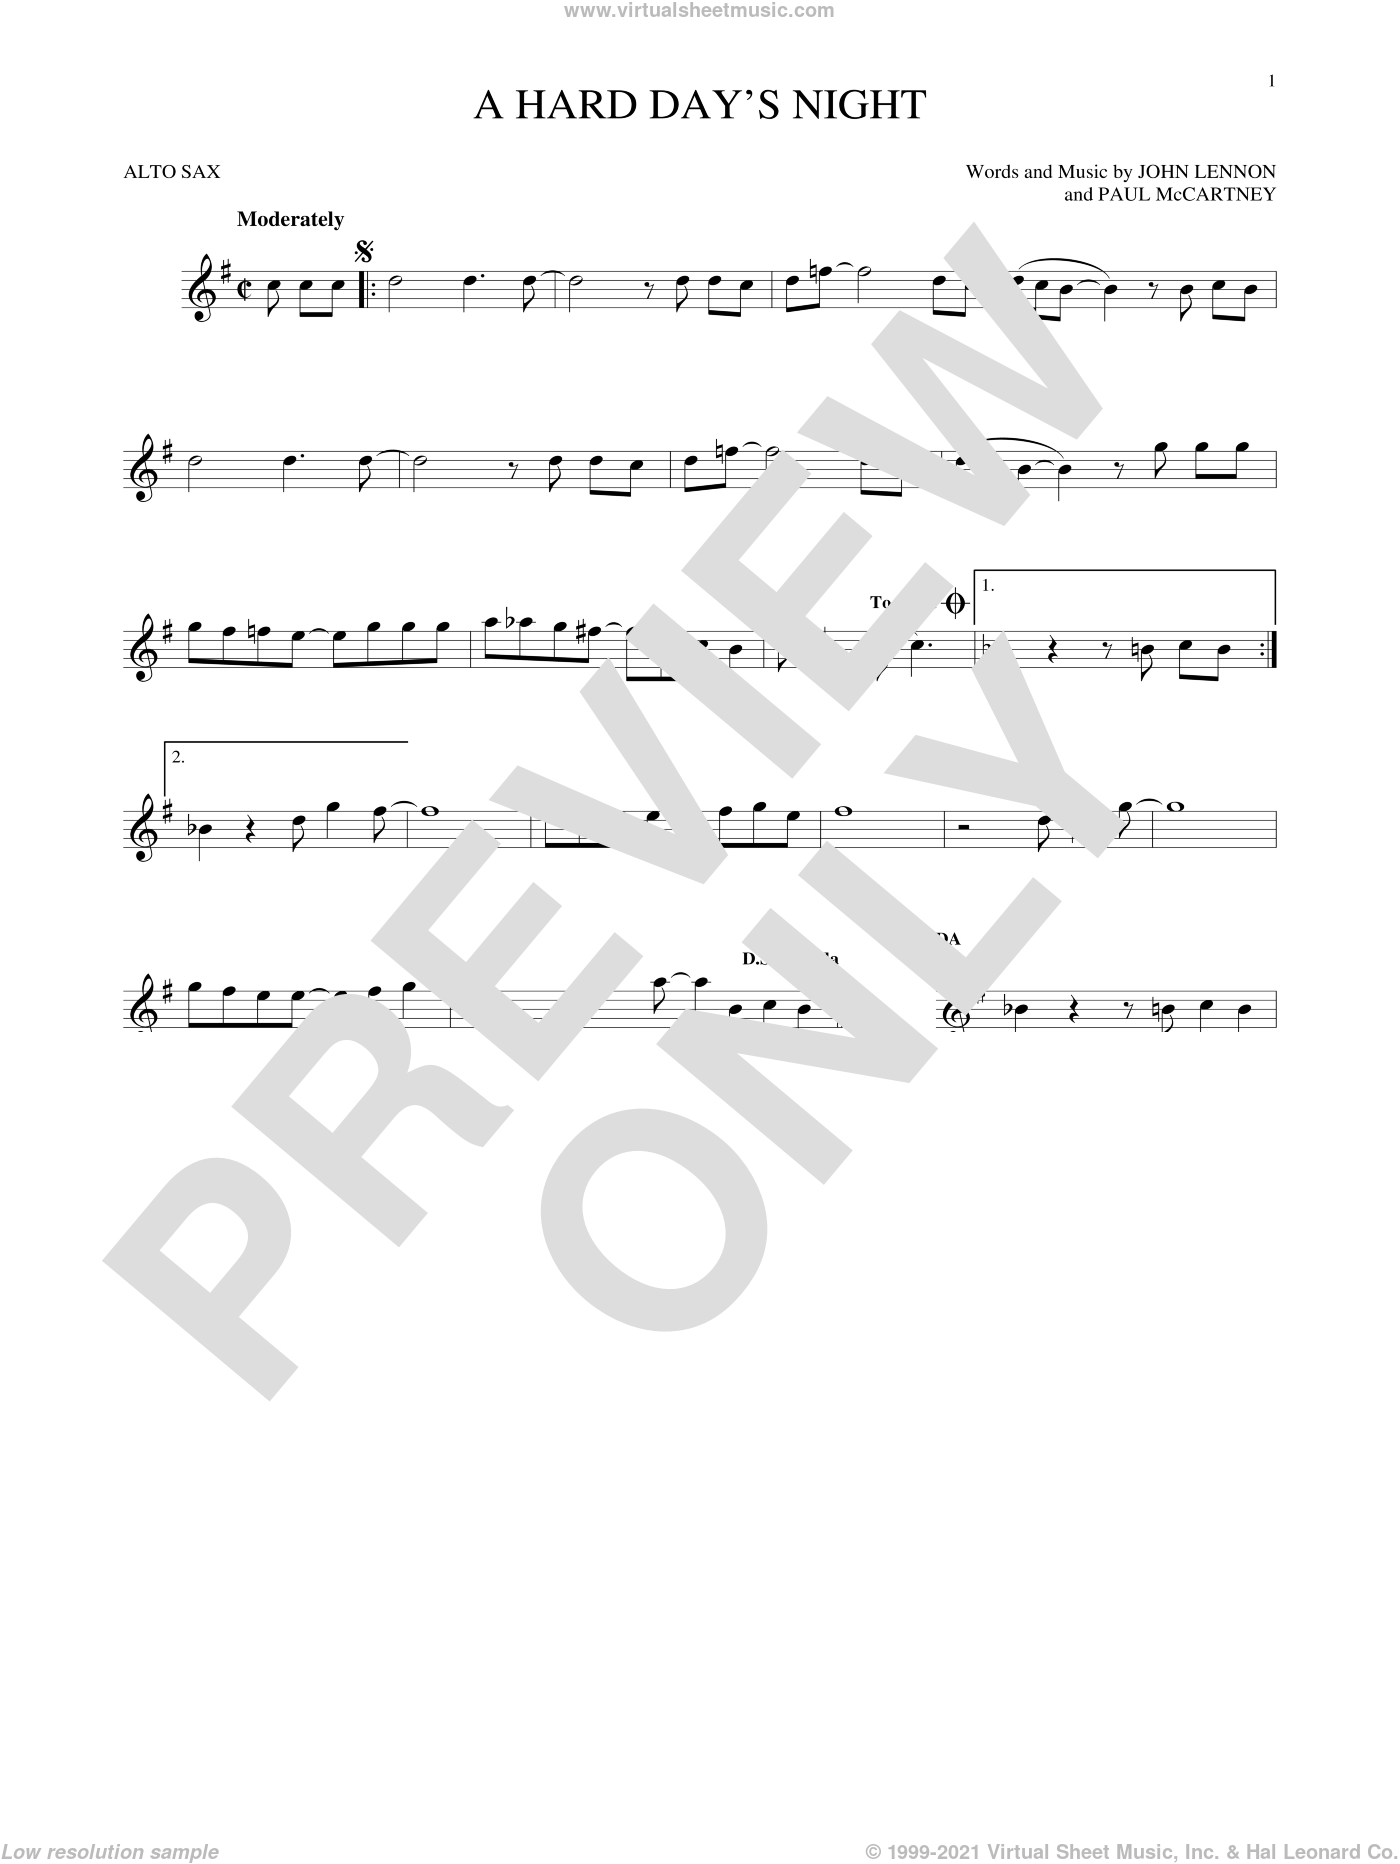 A Hard Day's Night sheet music for alto saxophone solo by The Beatles, John Lennon and Paul McCartney, intermediate skill level